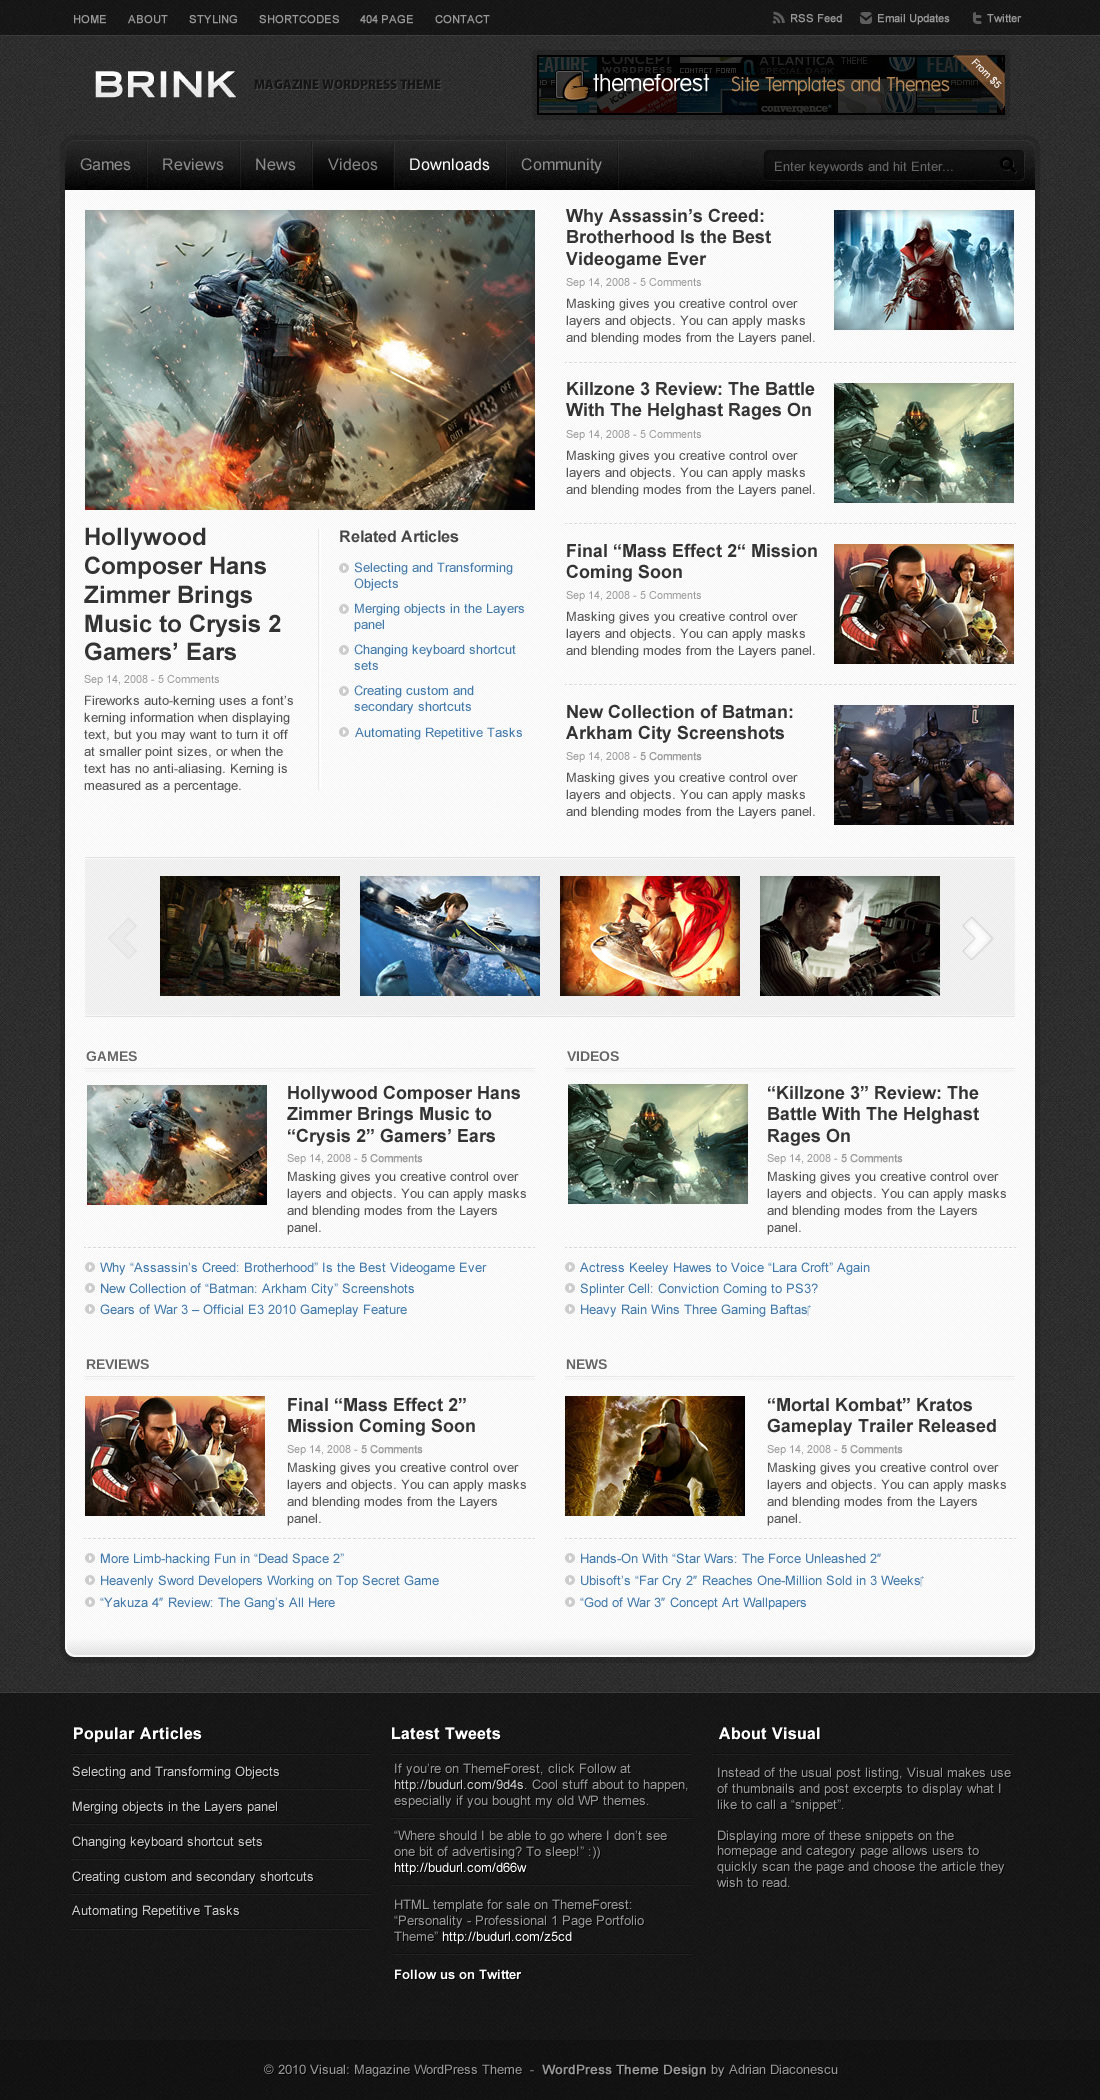 Brink - Magazine WordPress Theme - Homepage Dark Skin